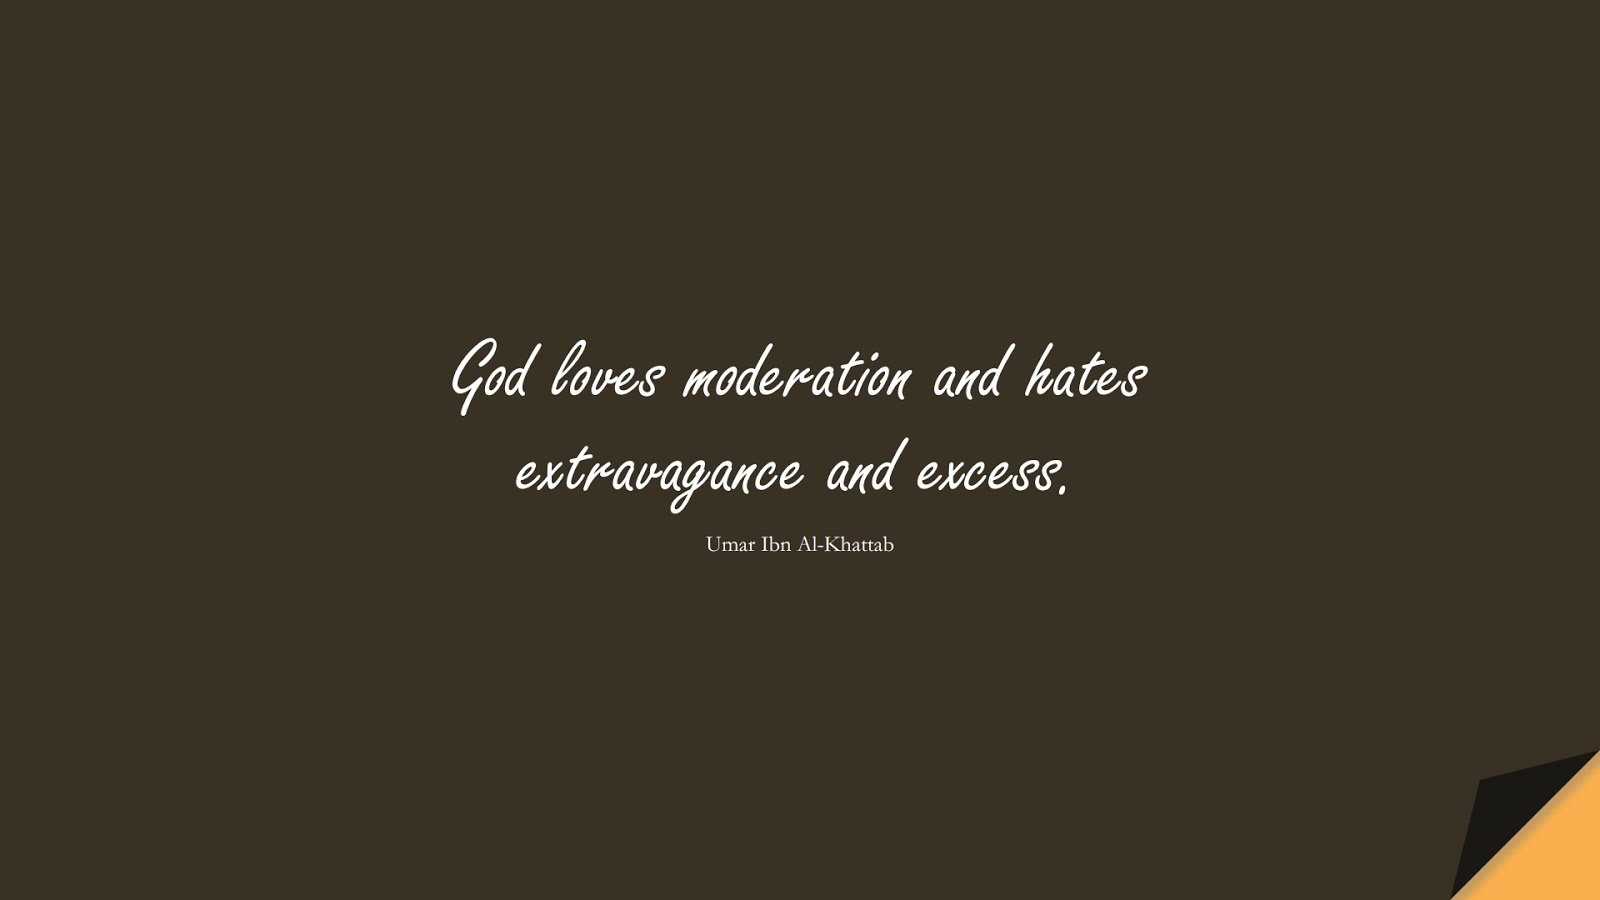 God loves moderation and hates extravagance and excess. (Umar Ibn Al-Khattab);  #UmarQuotes